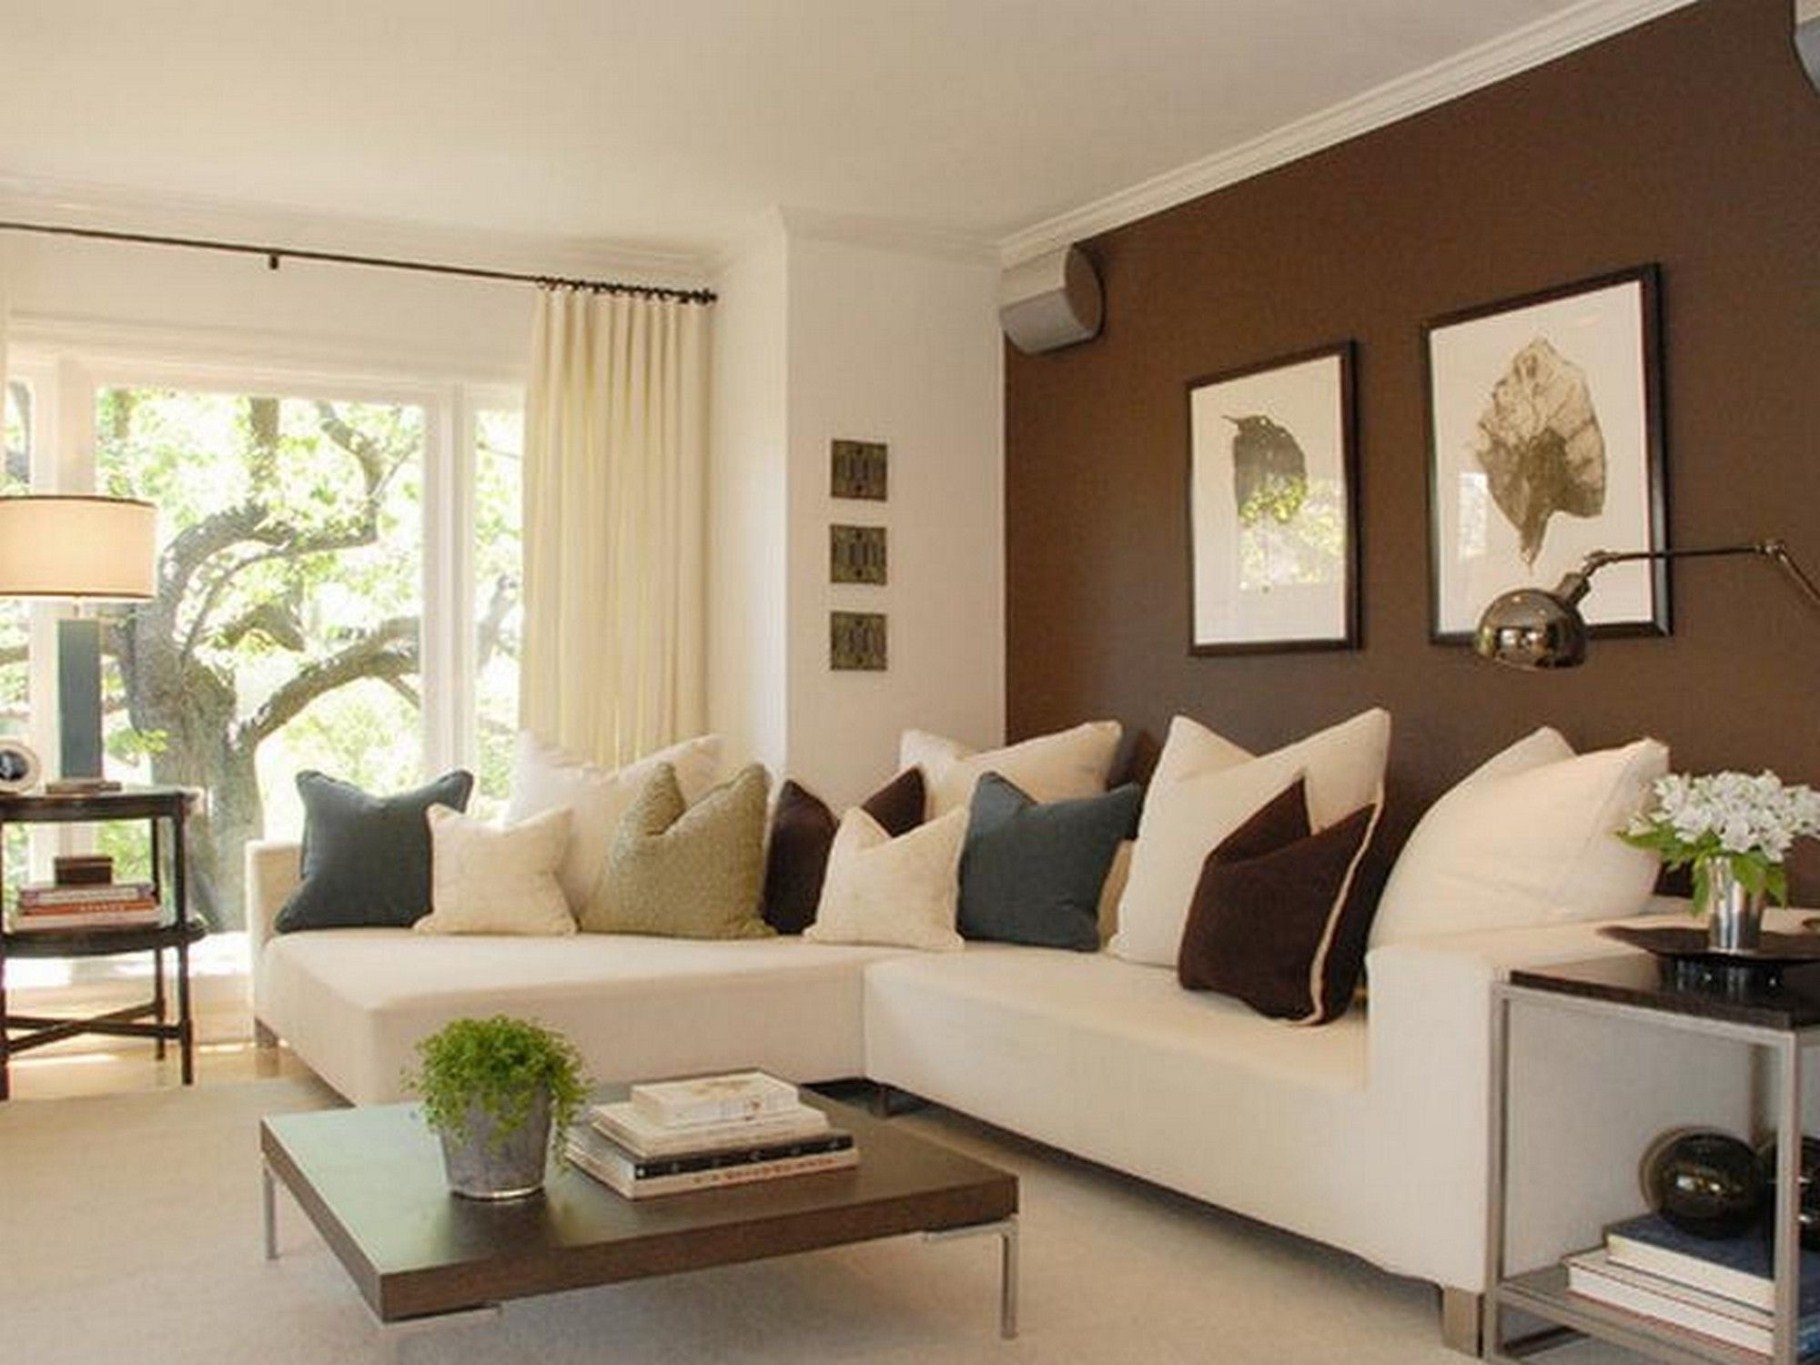 Living Room: Modern, Classic And Chic For Living Room Ideas With In Sectional Sofas Decorating (View 7 of 10)